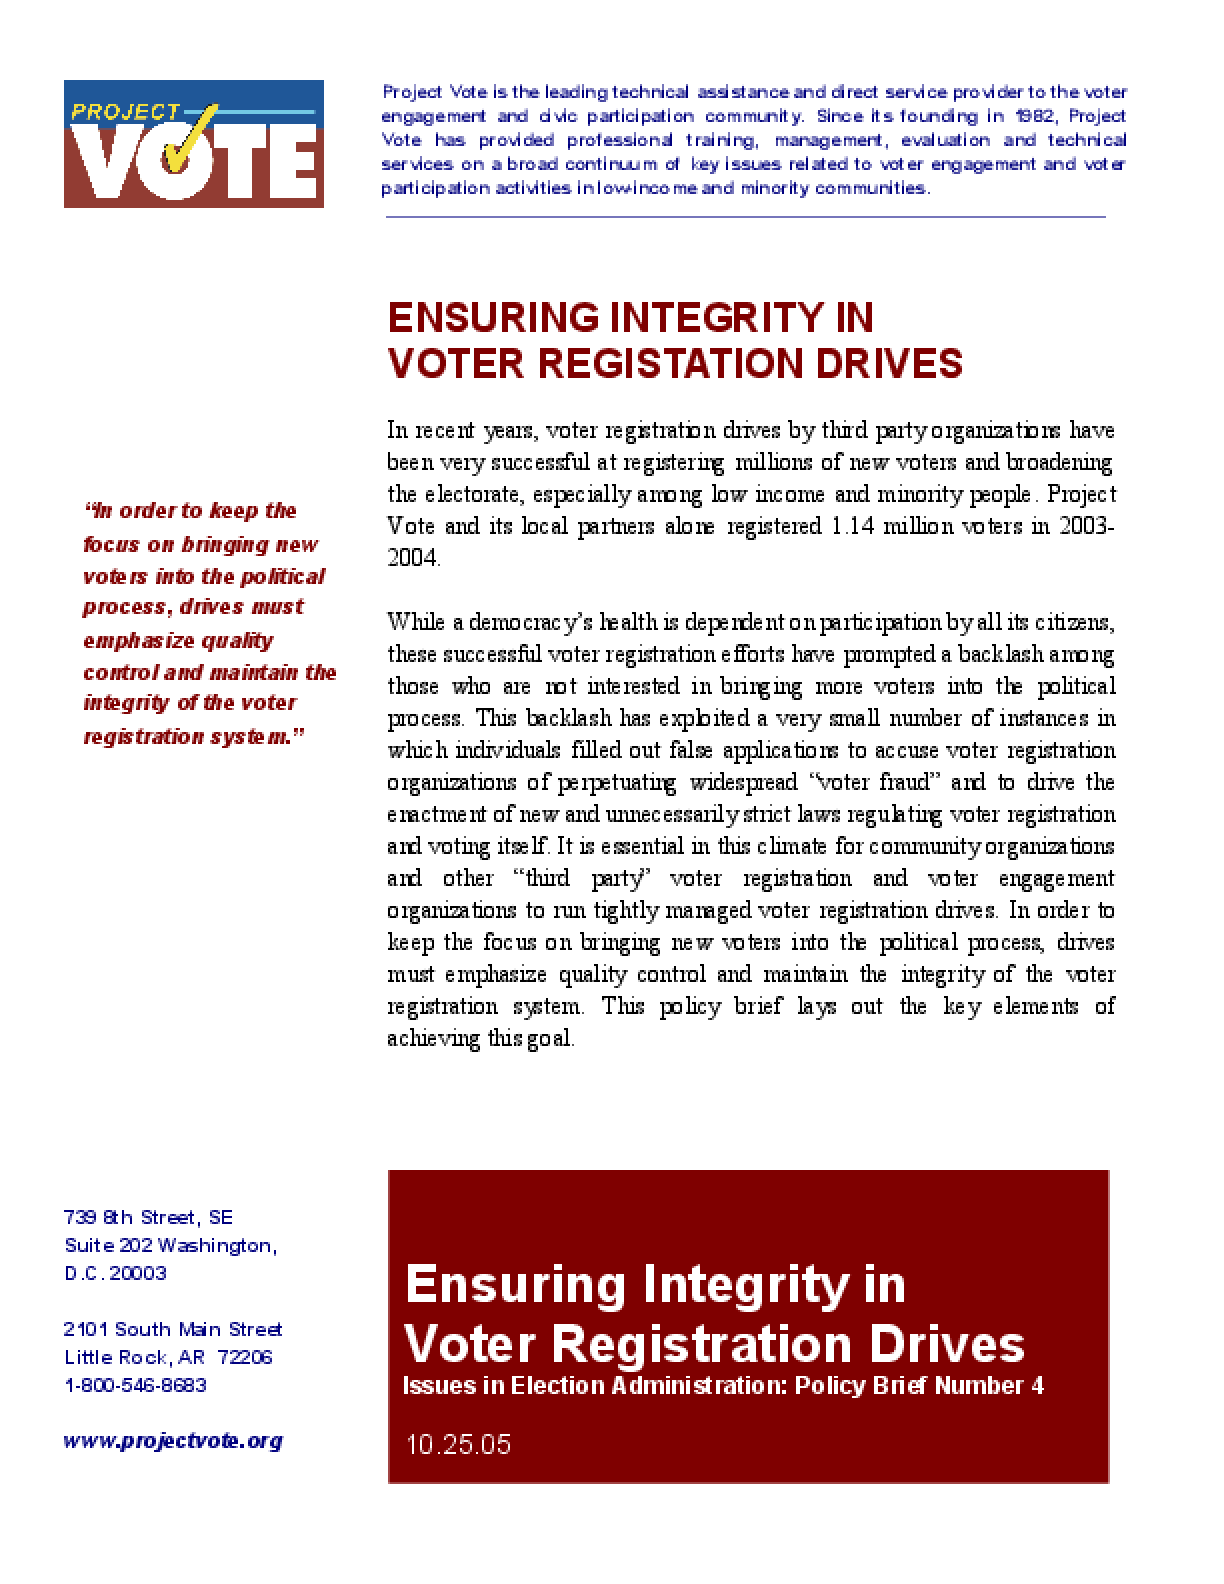 Ensuring Integrity in Voter Registration Drives